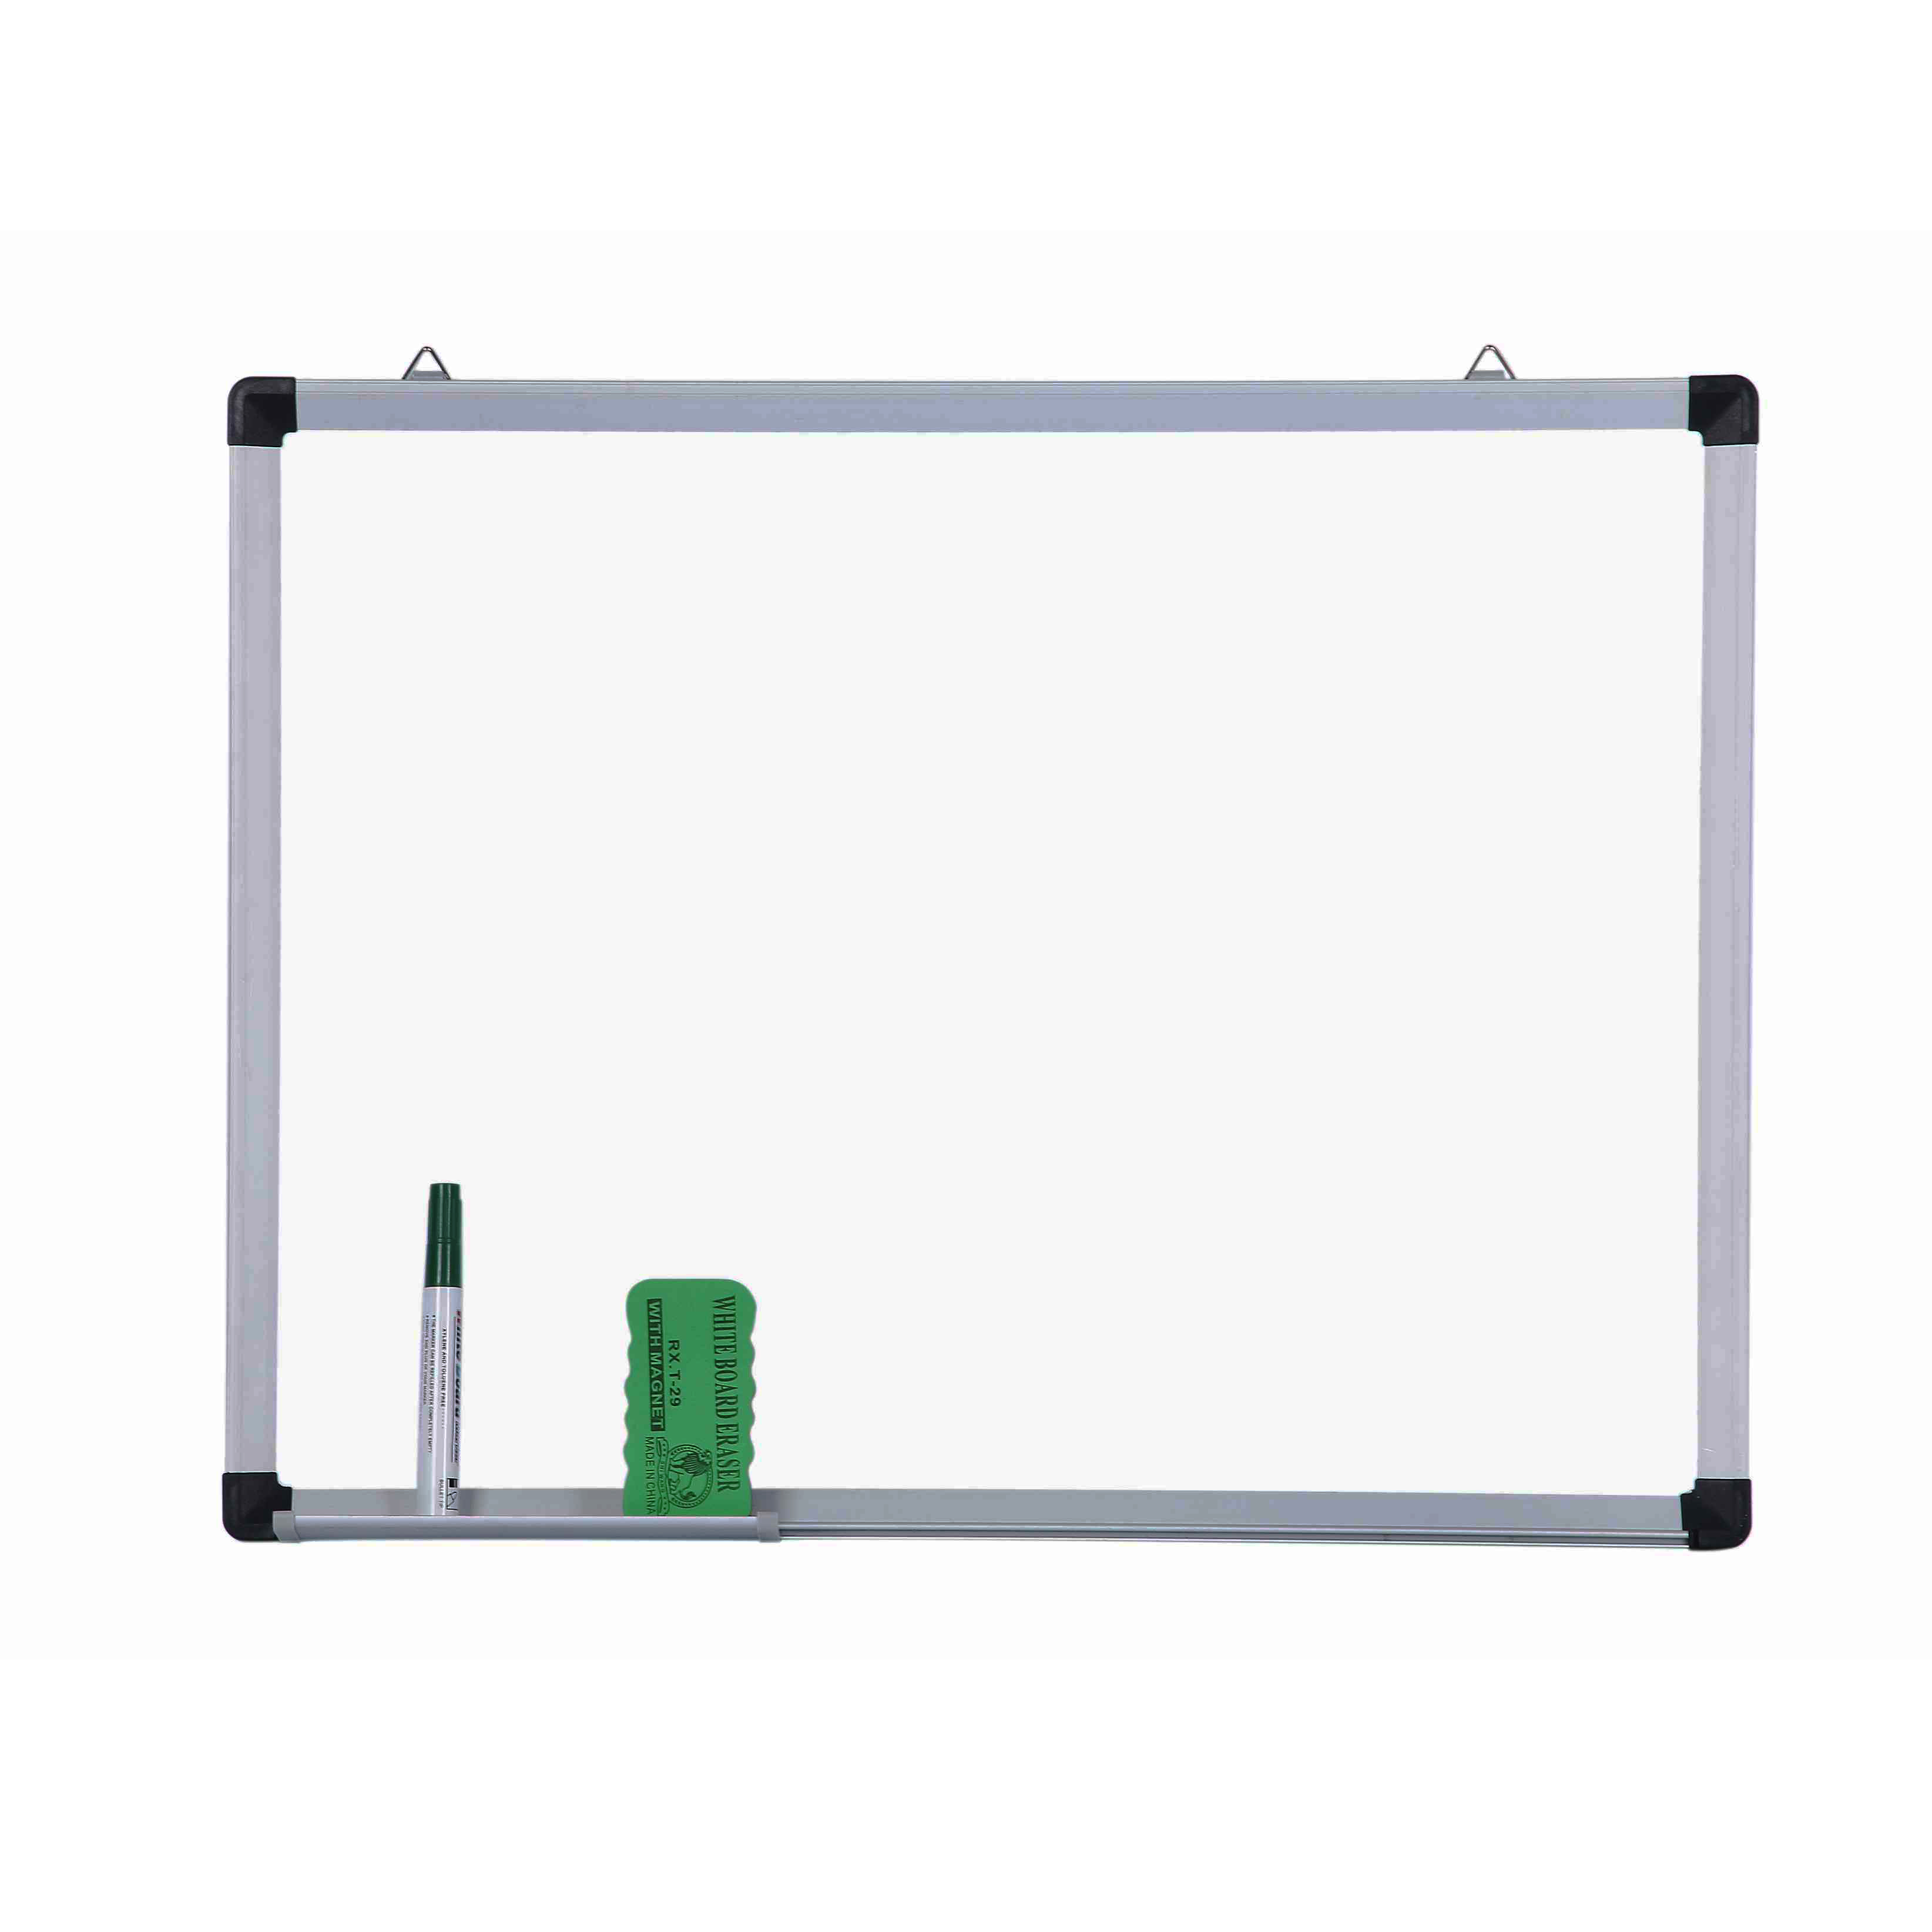 dry erase whiteboard dry erase mark board eraser. Black Bedroom Furniture Sets. Home Design Ideas